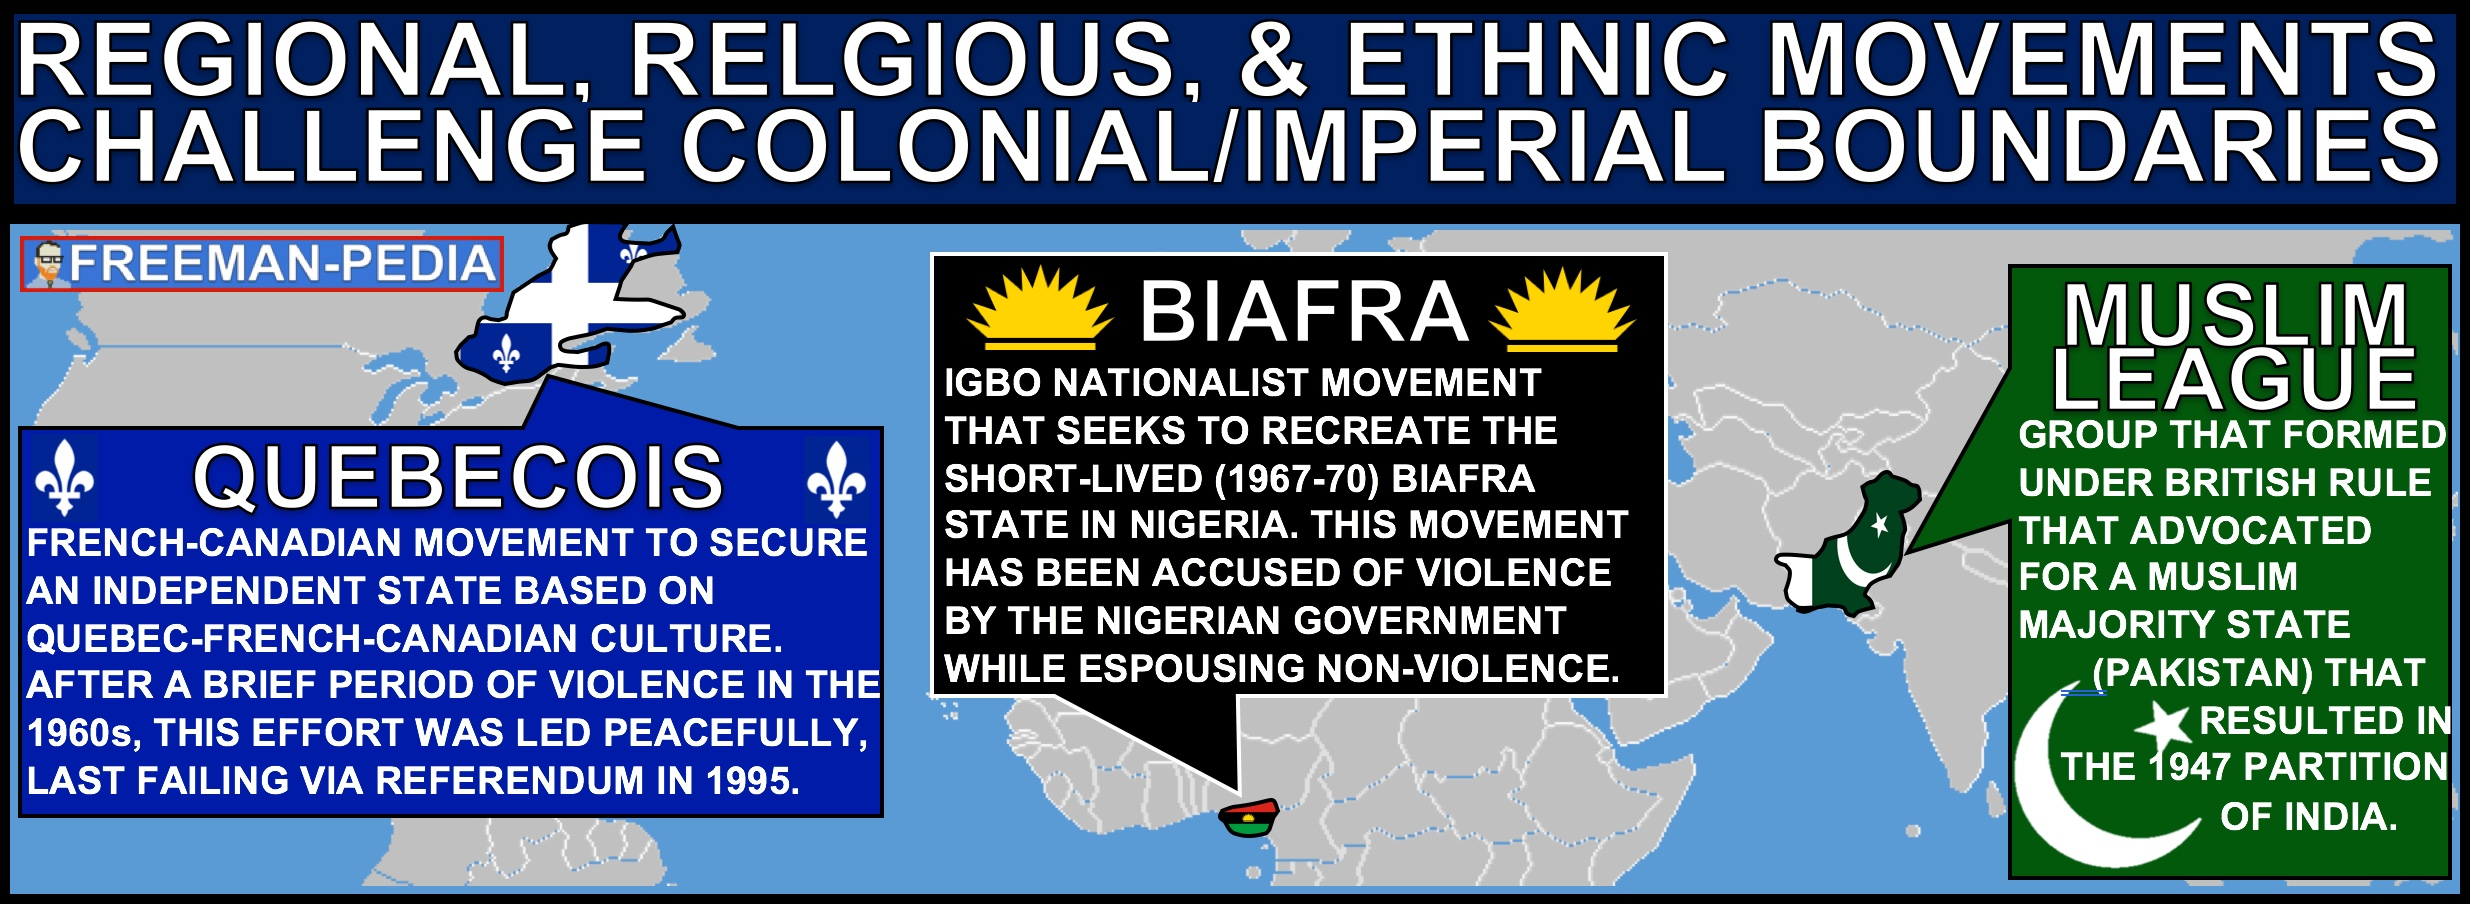 B. Regional ( Quebecois ), religious ( Muslim League in British India ), and ethnic movements ( Biafra Movement in Nigeria ) challenged both colonial rule and inherited imperial boundaries.